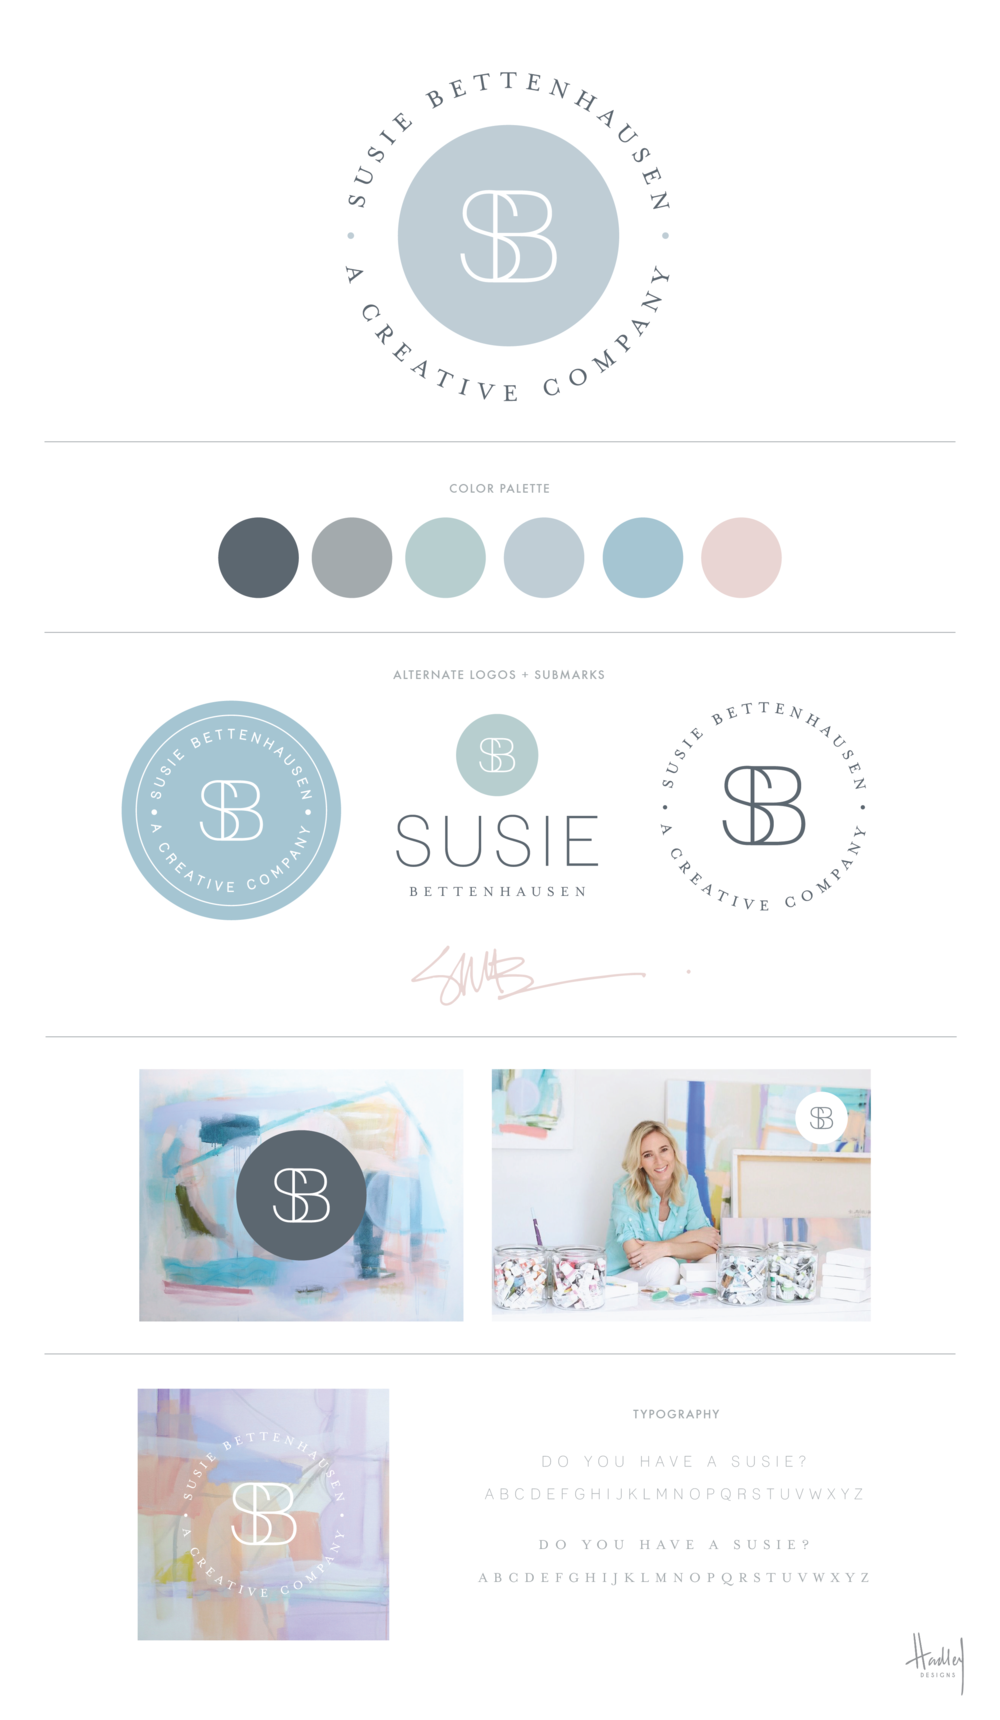 To say I've been an admirer of Susie Bettenhausen's work is an understatement. When Susie contacted me to help her with her branding, I felt like was working a celebrity:) She's as genuine and sincere as they come, and I'm loving how her branding turned out! #doyouhaveasusie